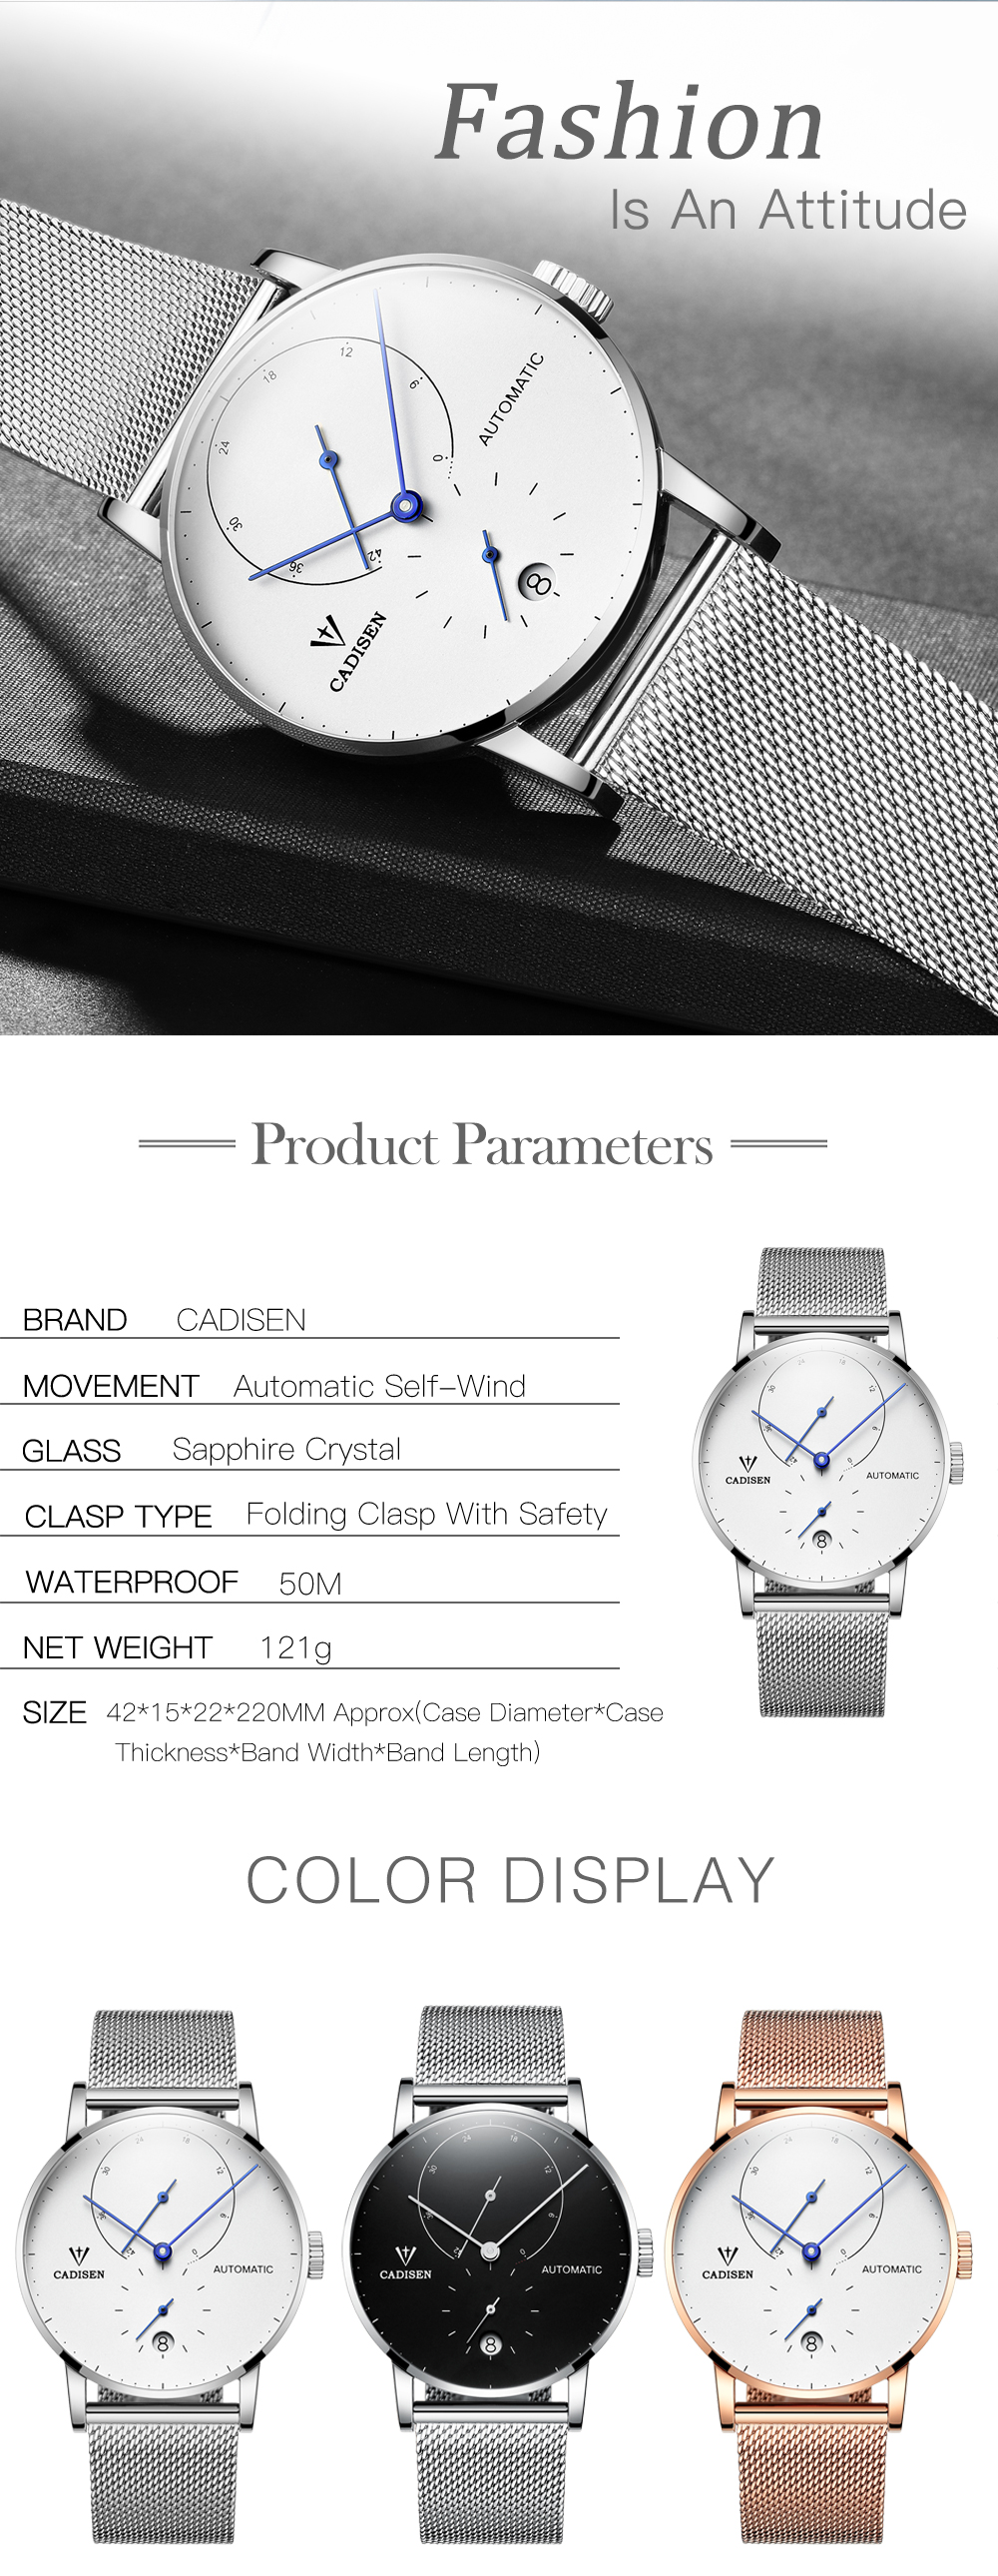 HTB1FhiWvNuTBuNkHFNRq6A9qpXar CADISEN Top Mens Watches Top Brand Luxury Automatic Mechanical Watch Men Full Steel Business Waterproof Fashion Sport Watches